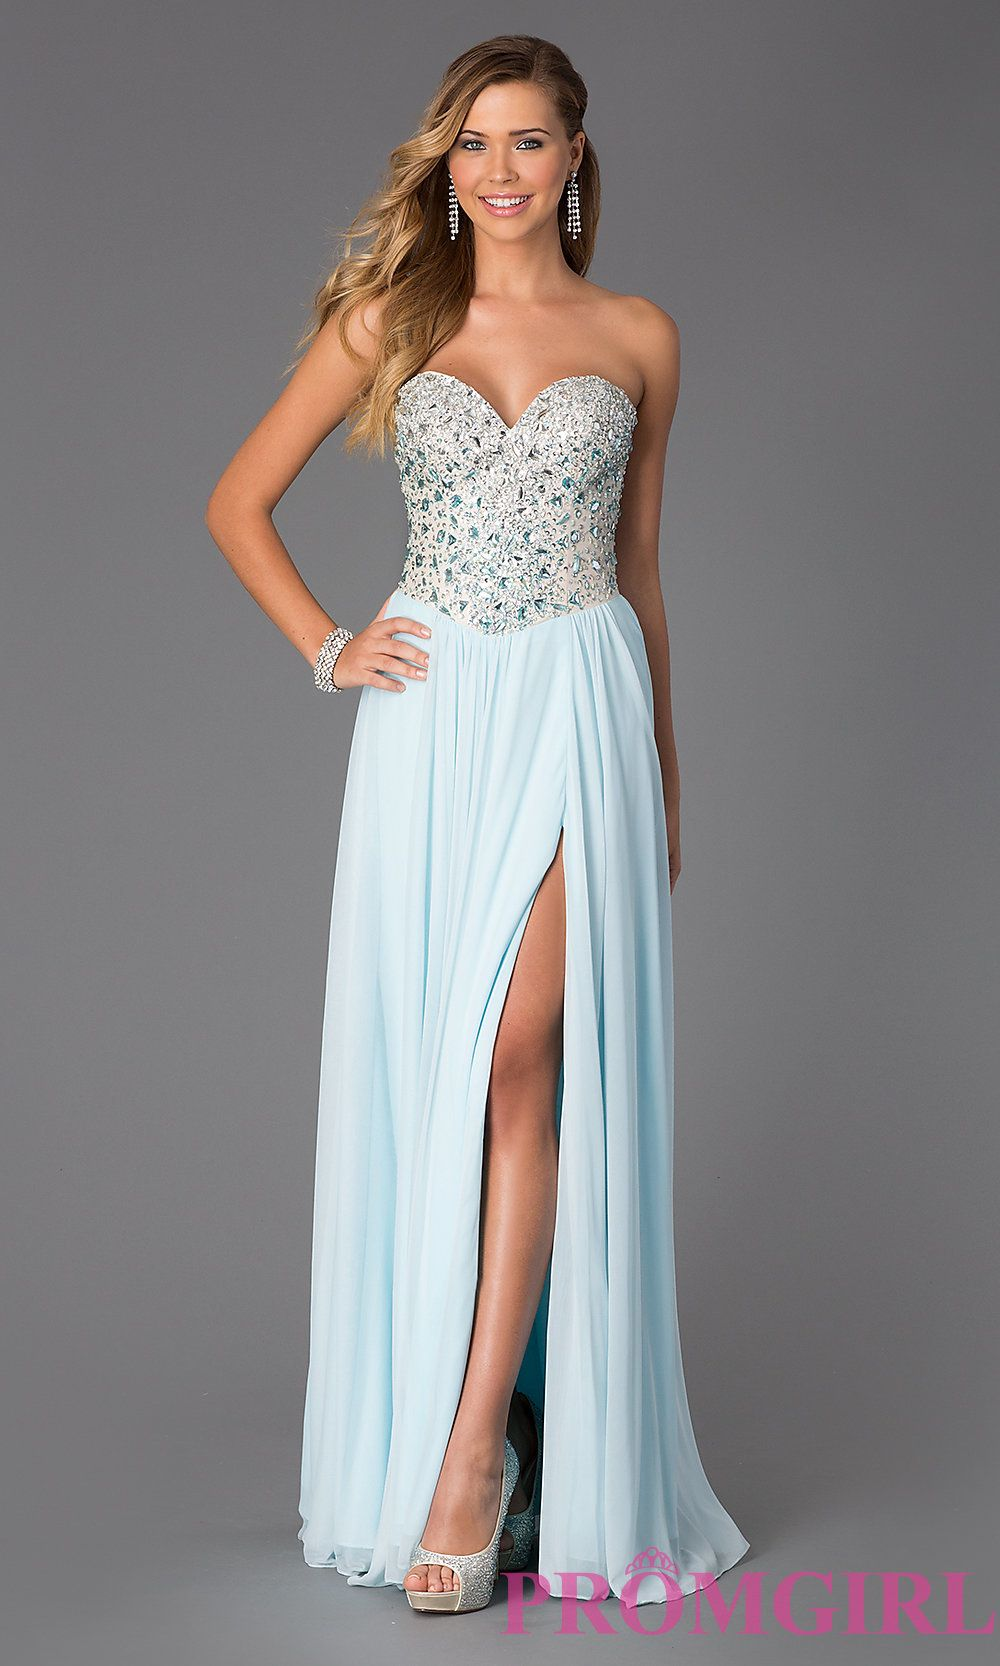 10 Best images about prom dresses for emily on Pinterest - Shops ...